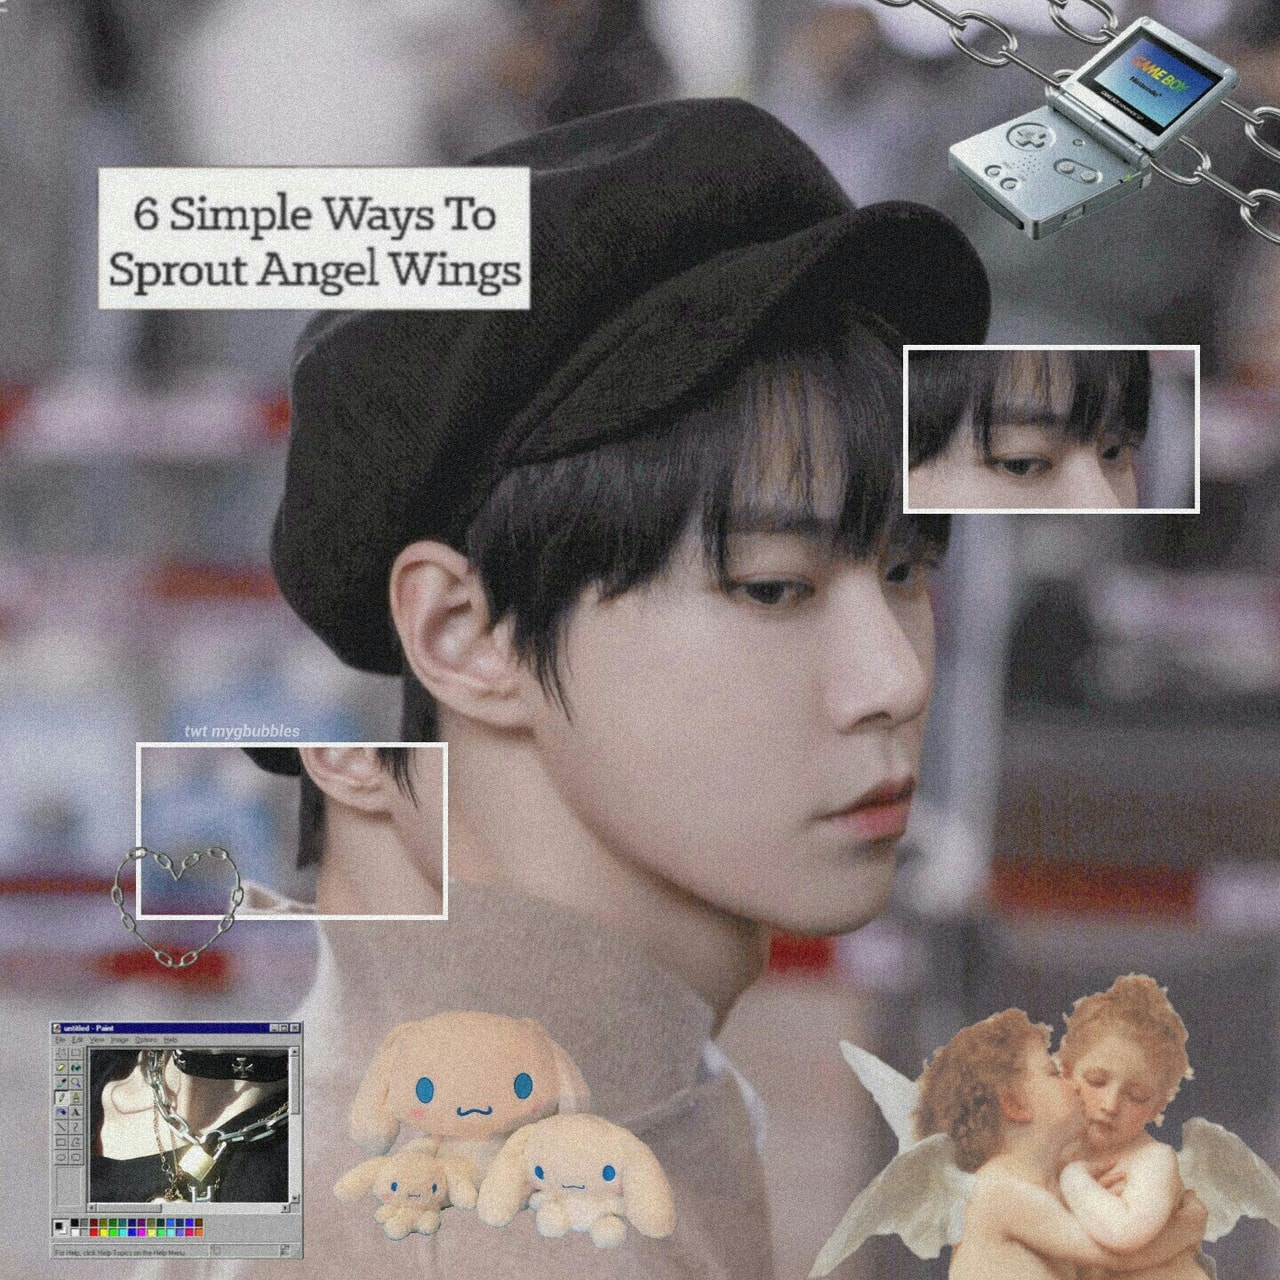 nct cyber, doyoung, nct edit and cyber edit